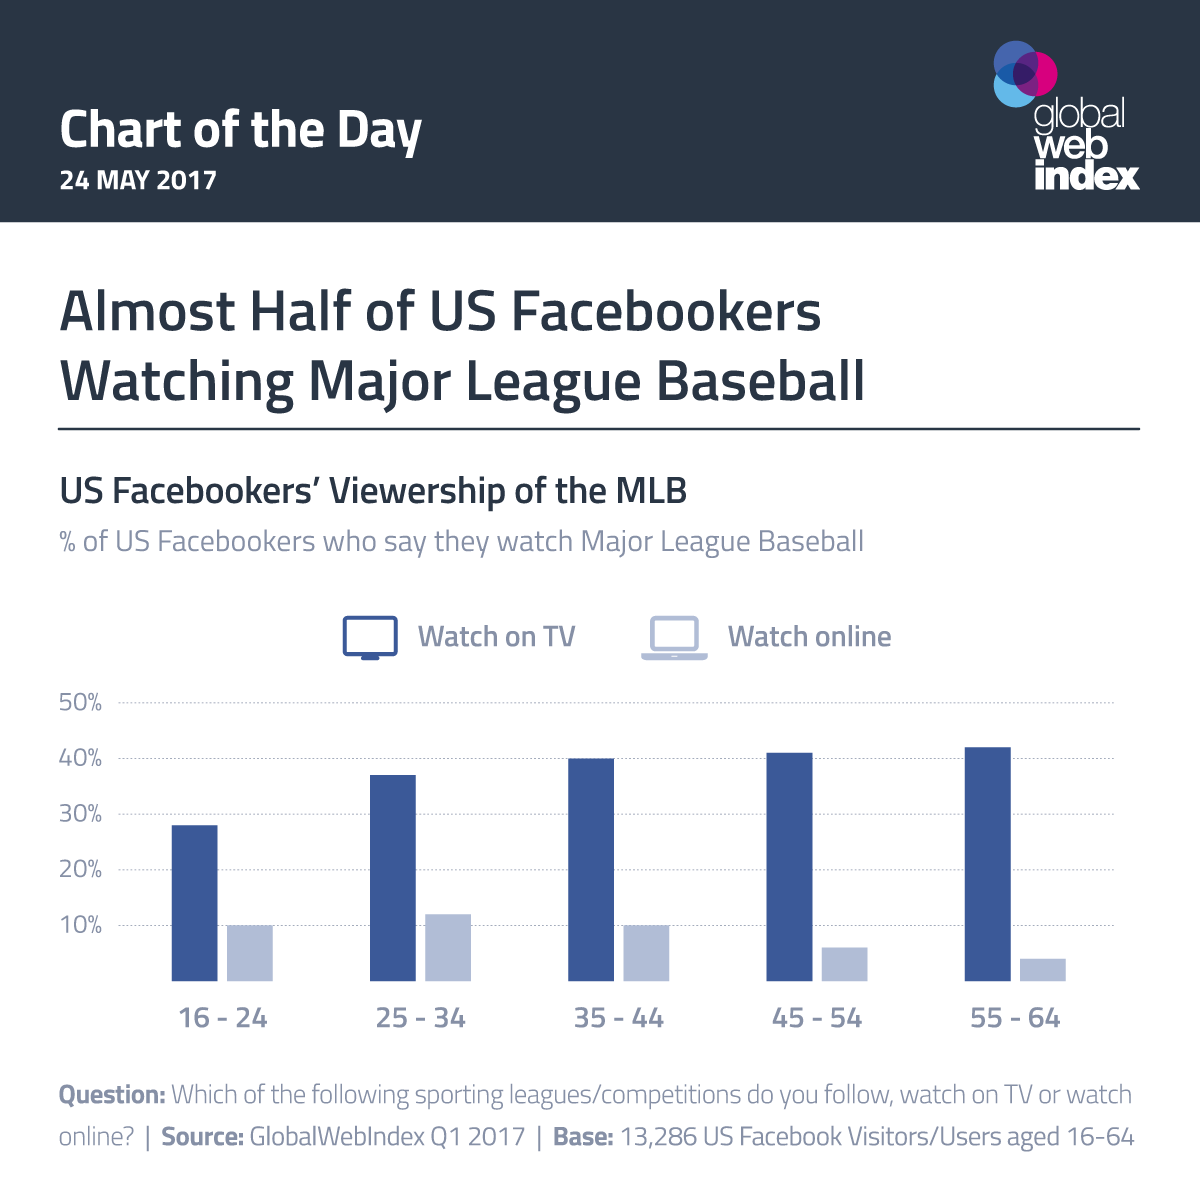 Almost Half of US Facebookers Watching Major League Baseball